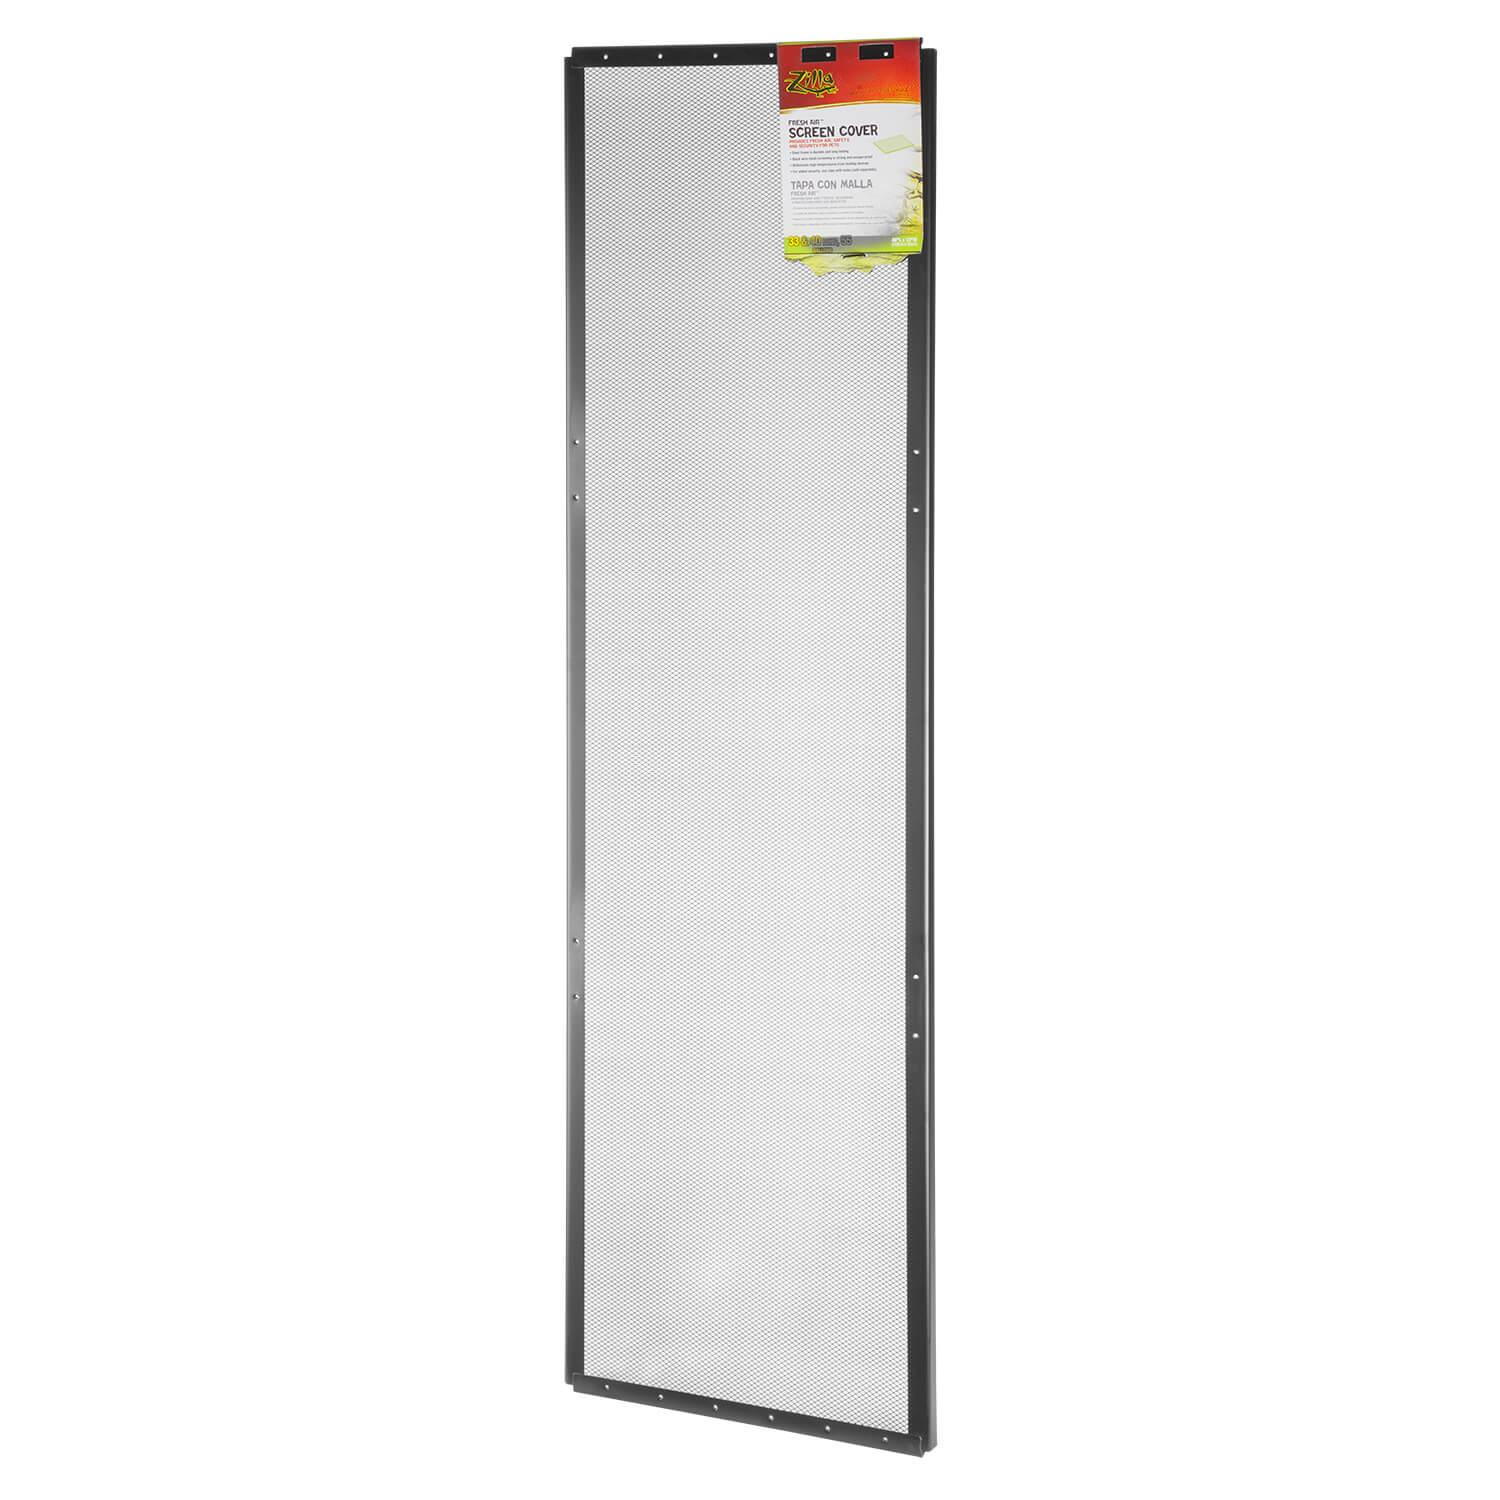 Zilla Fresh Air Screen Cover for Terrariums, 48-in x 13-in